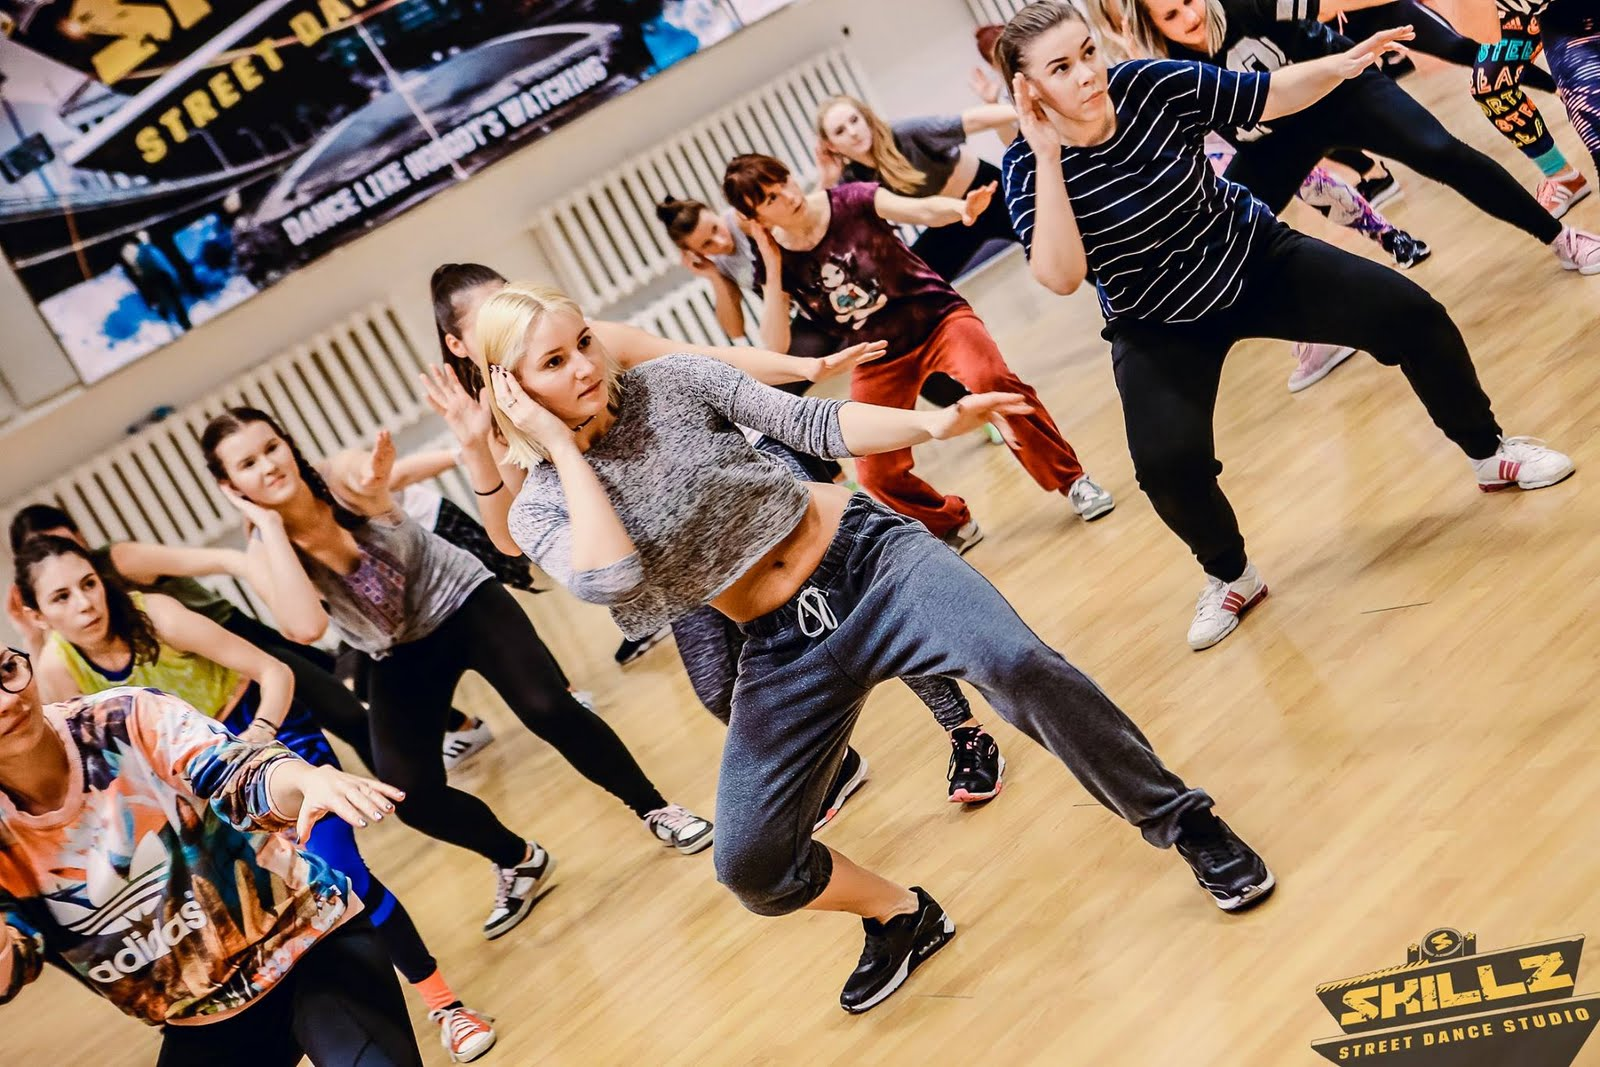 Dancehall workshop with Jiggy (France) - 13.jpg